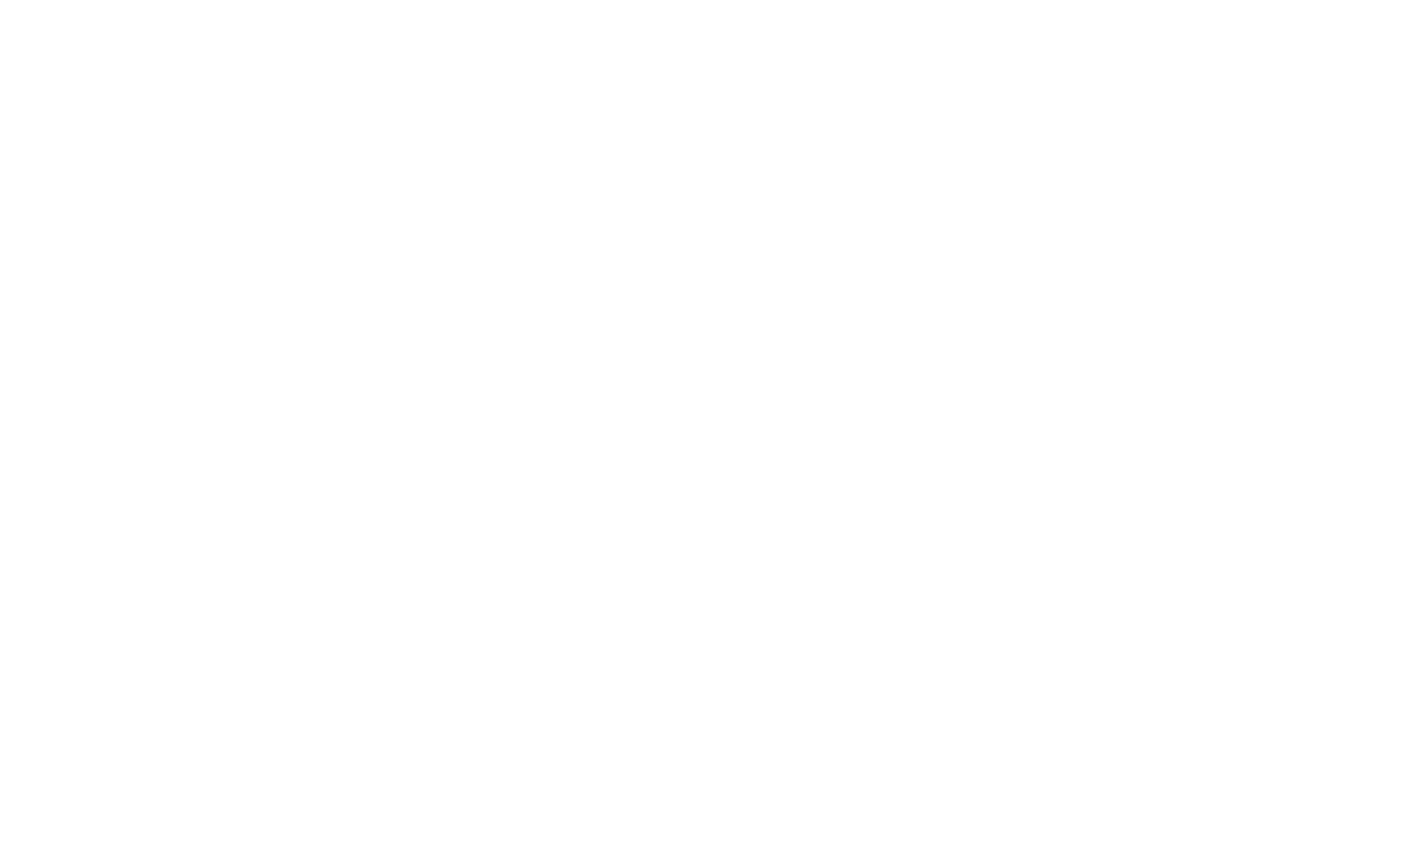 Elections November 3. Voting information for District 1 and 2.